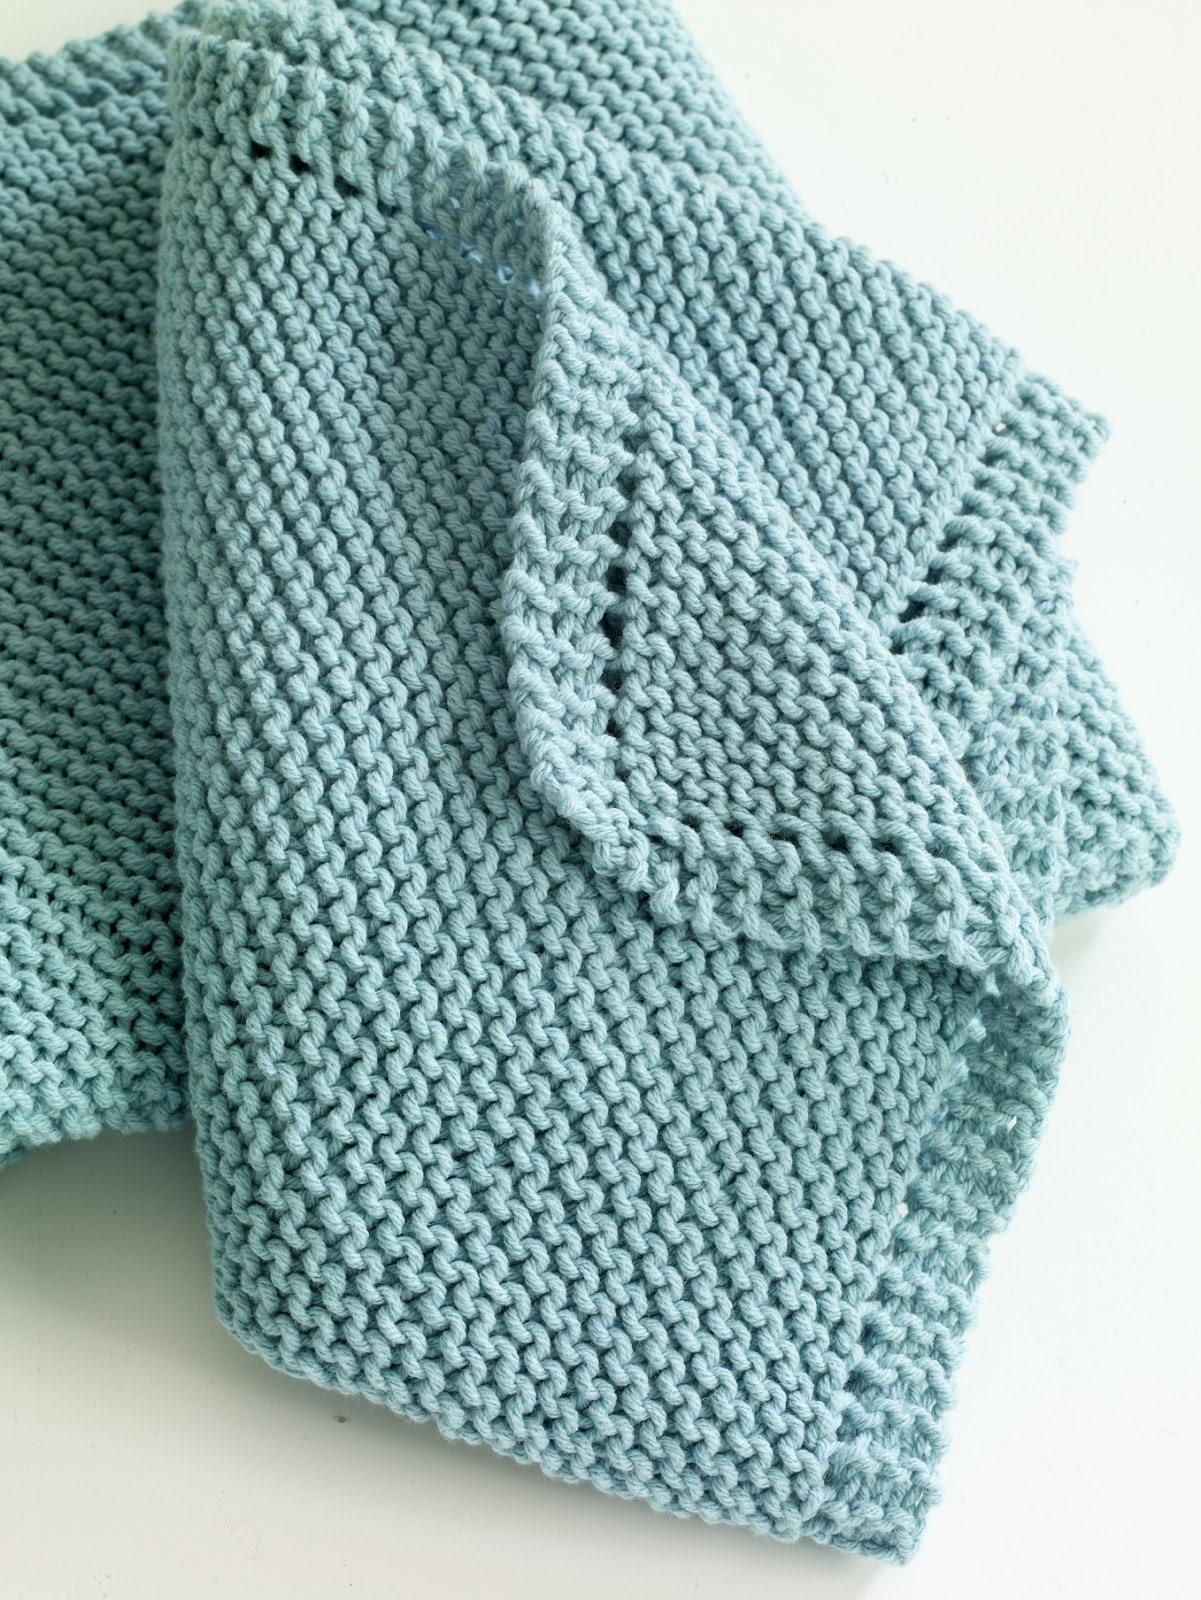 Knitting Pattern For A Throw Blanket : Serenity Knits: December 2012